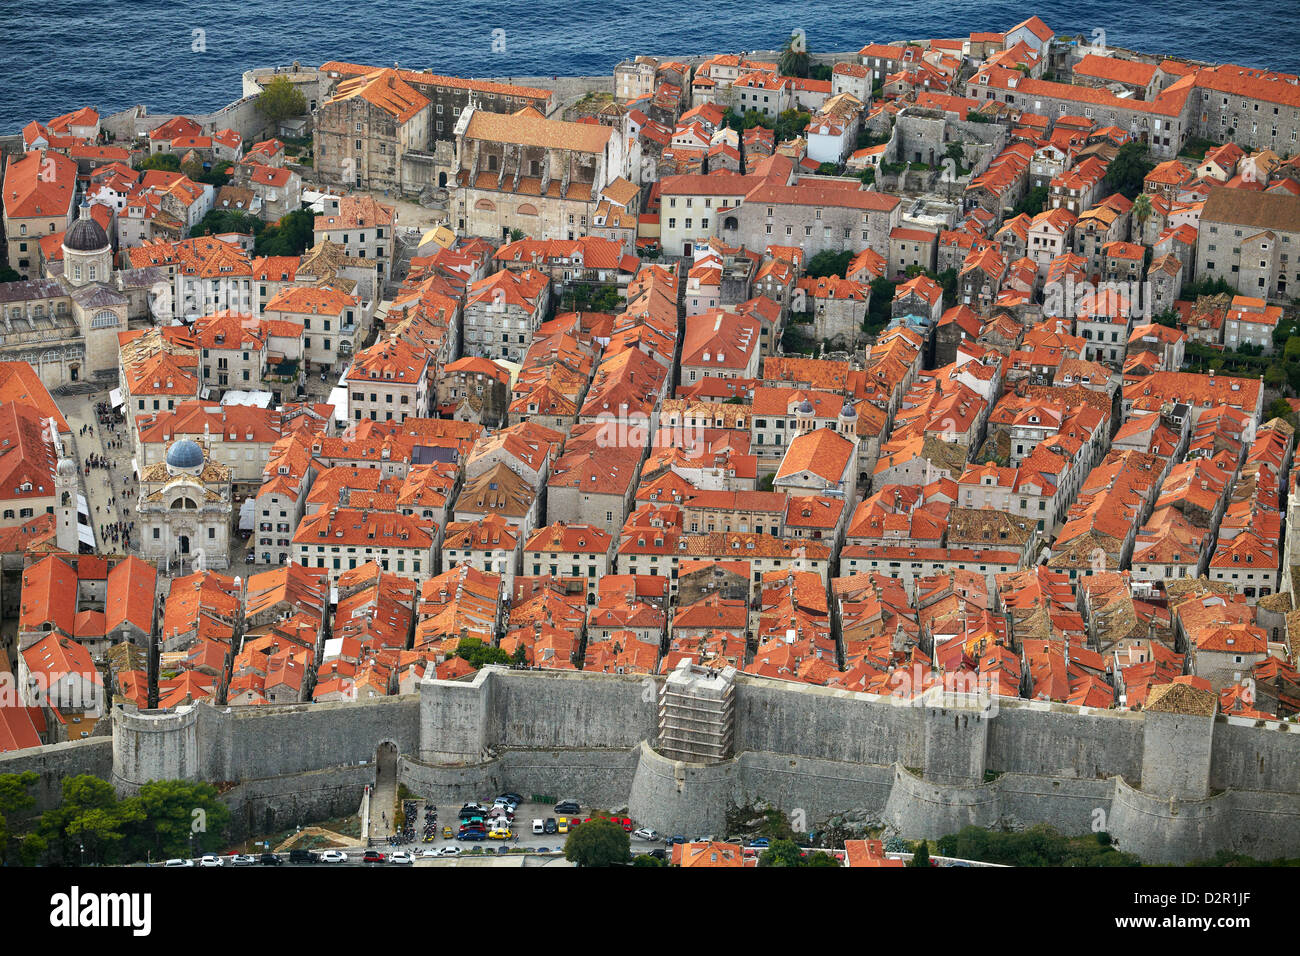 Dubrovnik, Old Town ond the city walls, Croatia - Stock Image